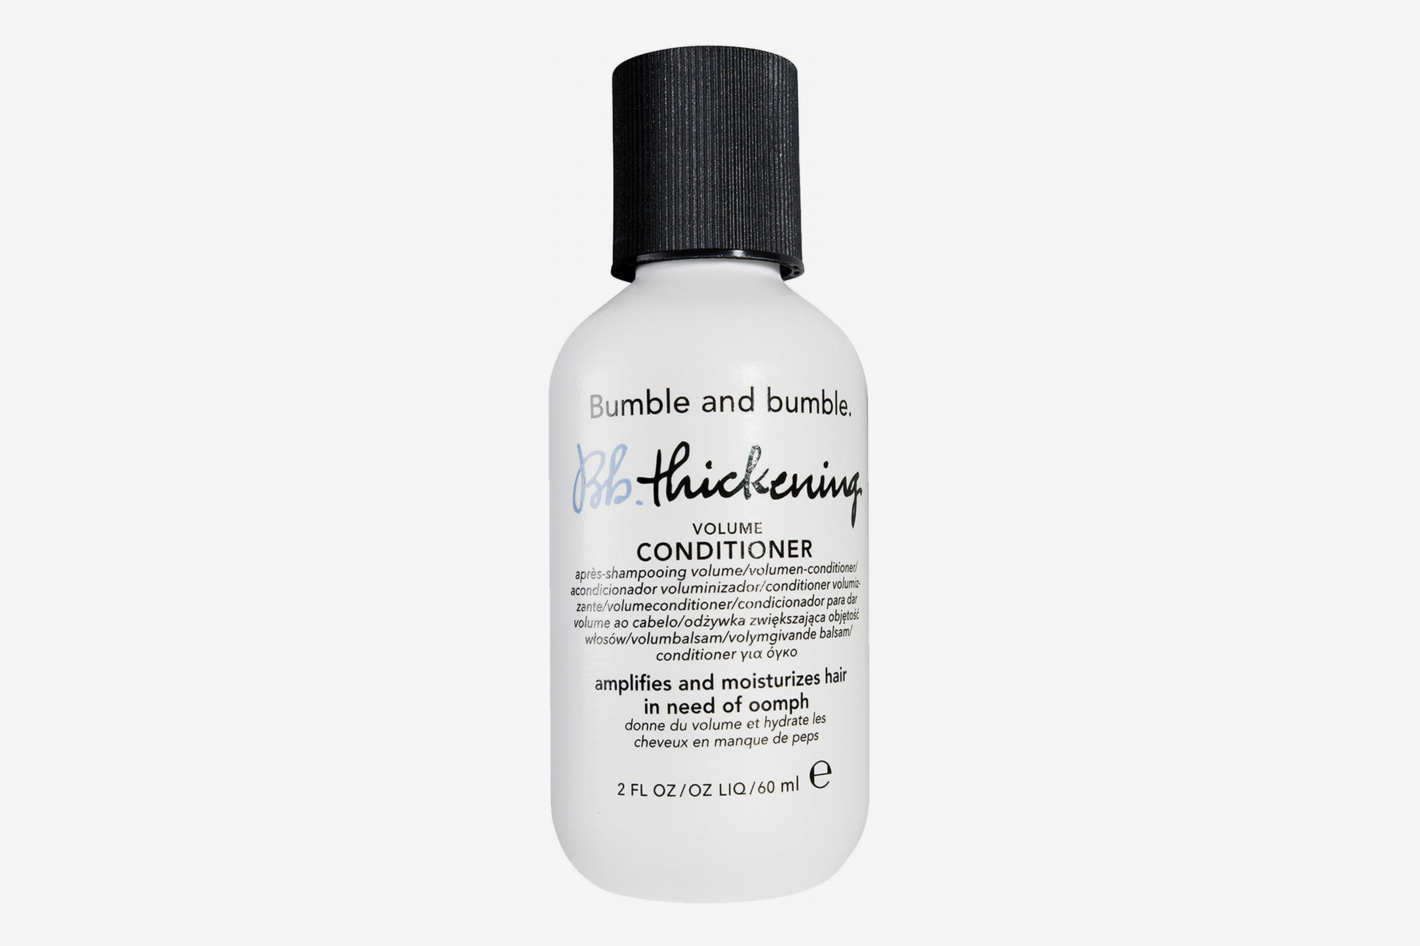 Bumble and Bumble Thickening Volume Conditioner Mini